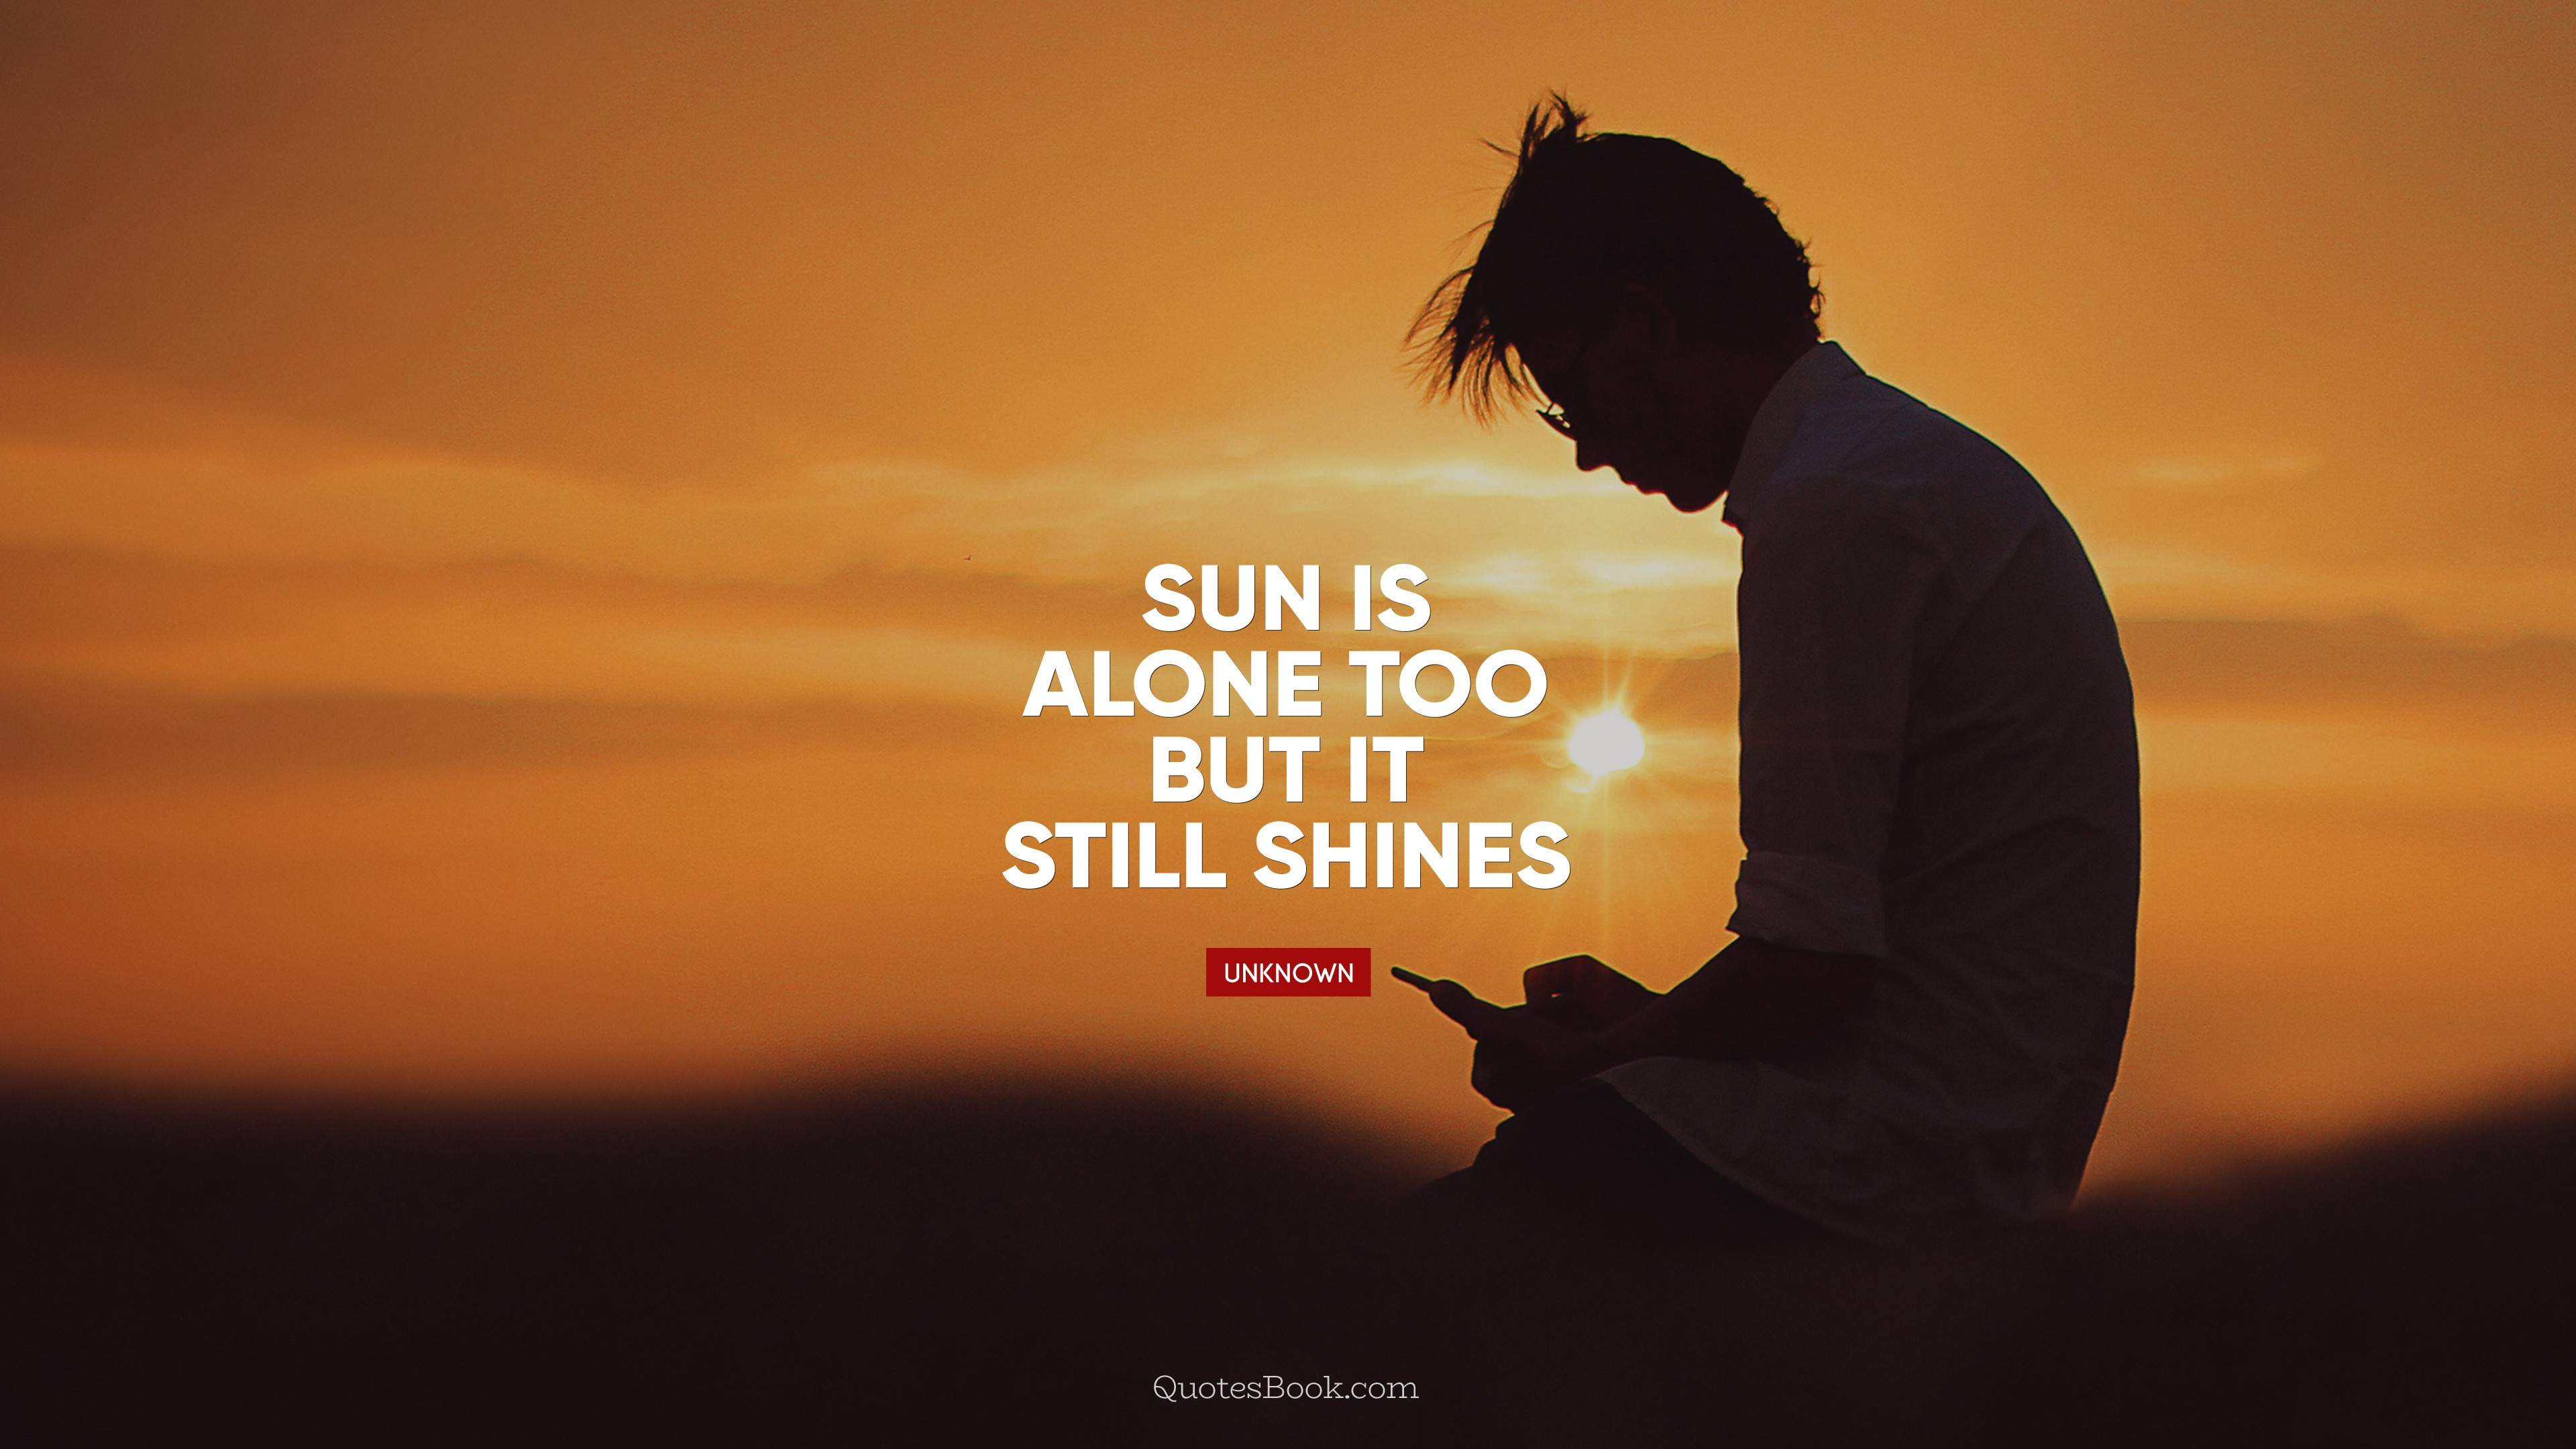 sun is alone too but it still shines quotesbook